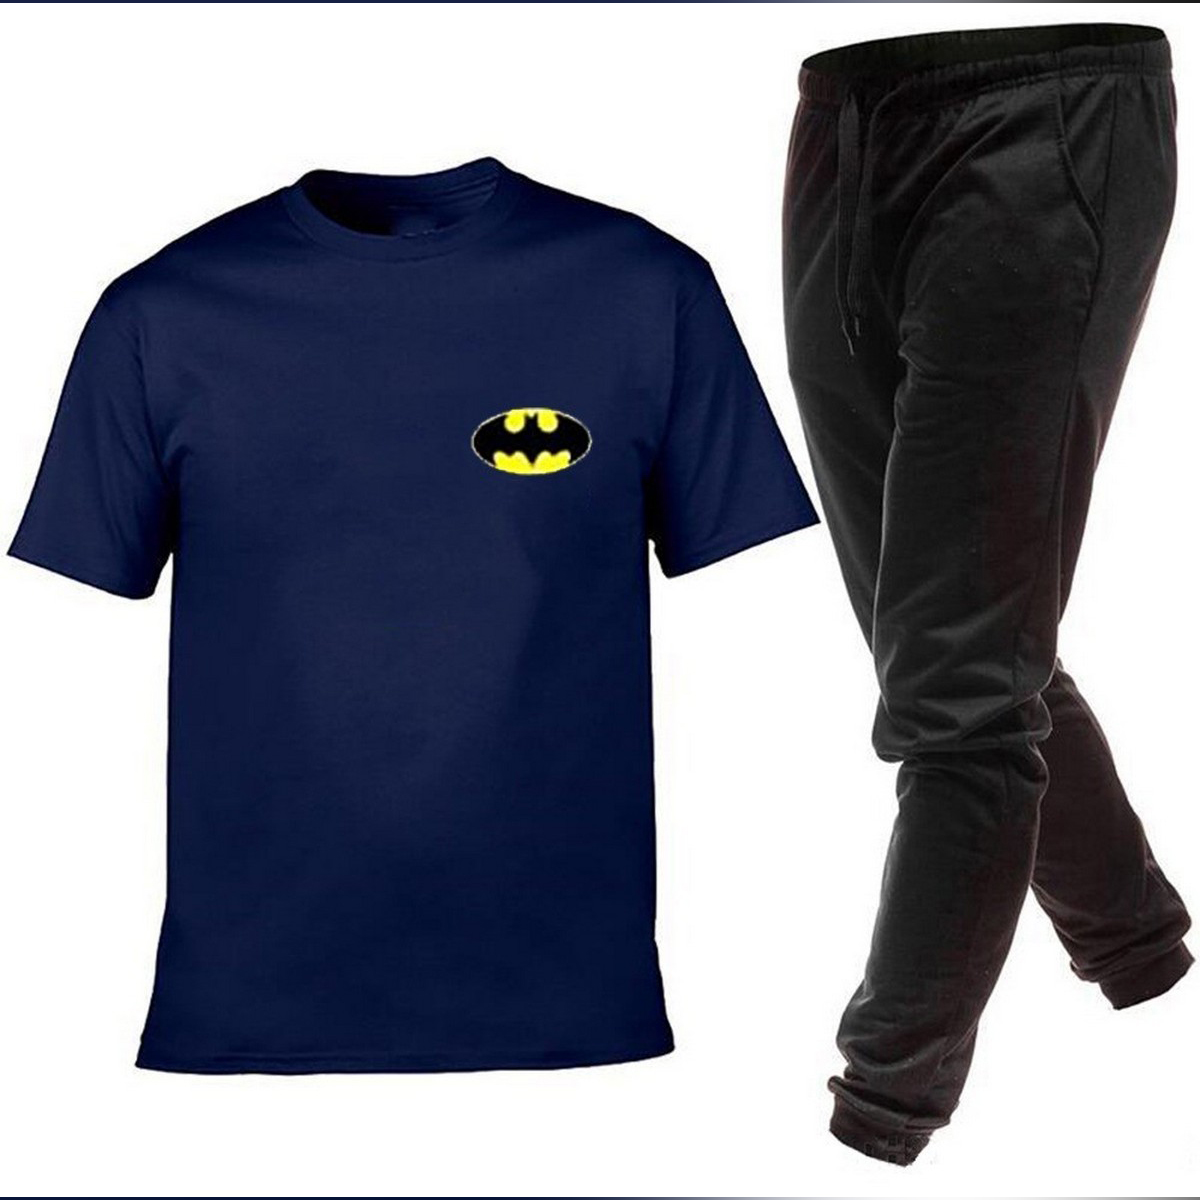 Batman Logo Printed Navy Tracksuit Half Sleeves T shirt And Plain Trouser 2021 New Collection Gym Sports Wear Casual Cotton Fashion T shirts For Men